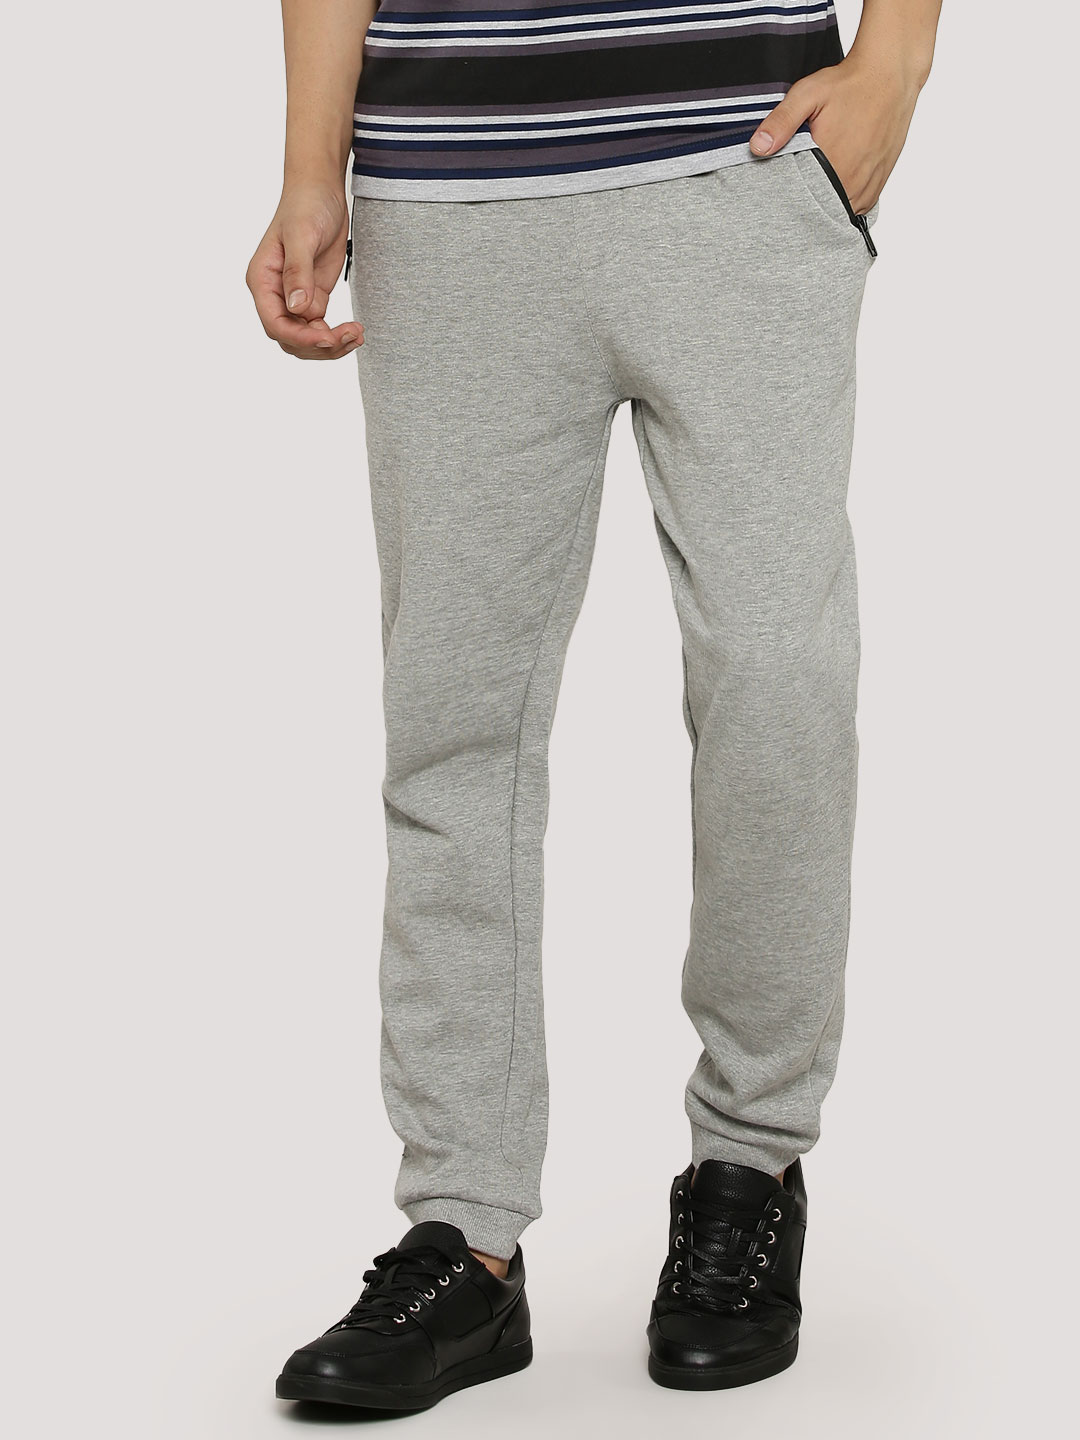 Brave Soul Grey Marl Joggers With Zip Pockets 1